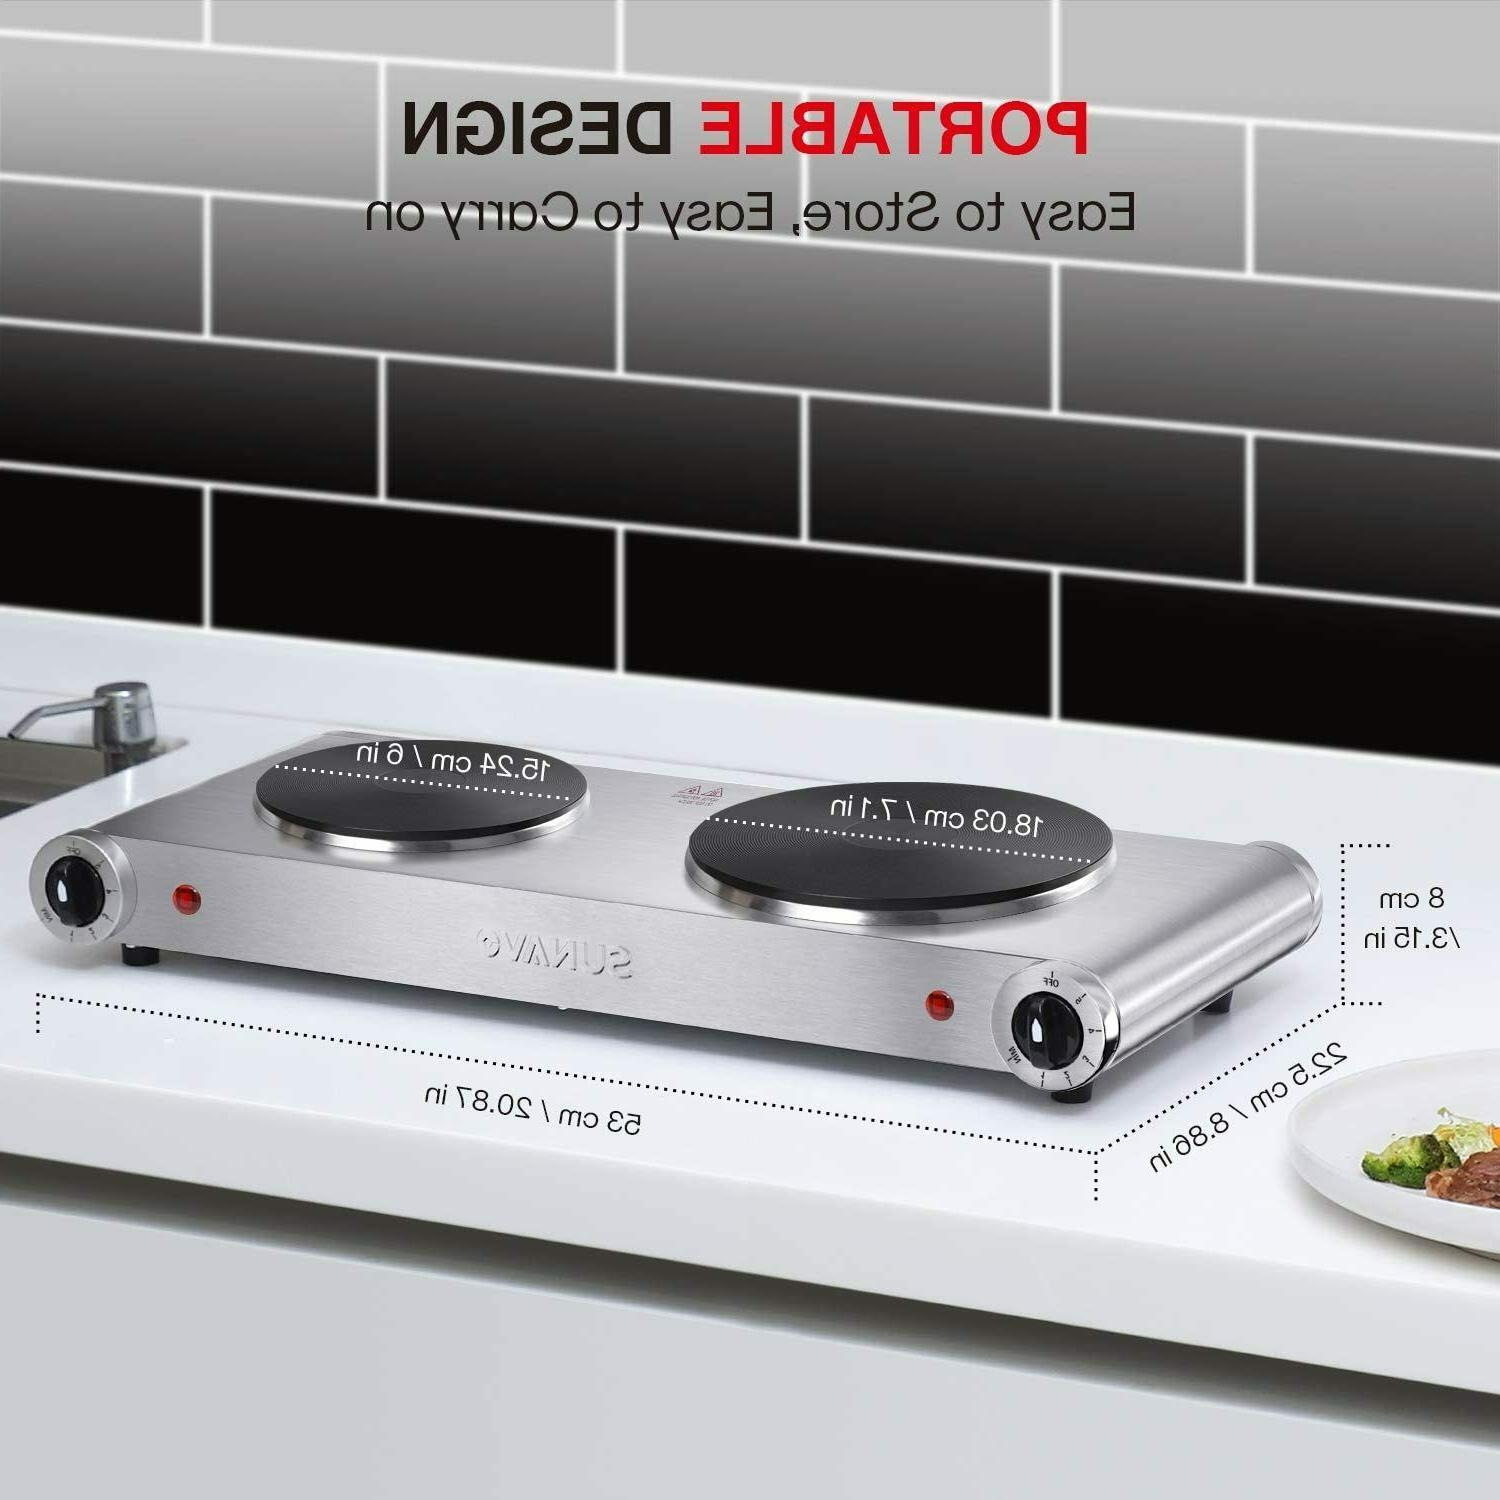 Hot Plates for Portable Electric Burner 1800W 5 Power